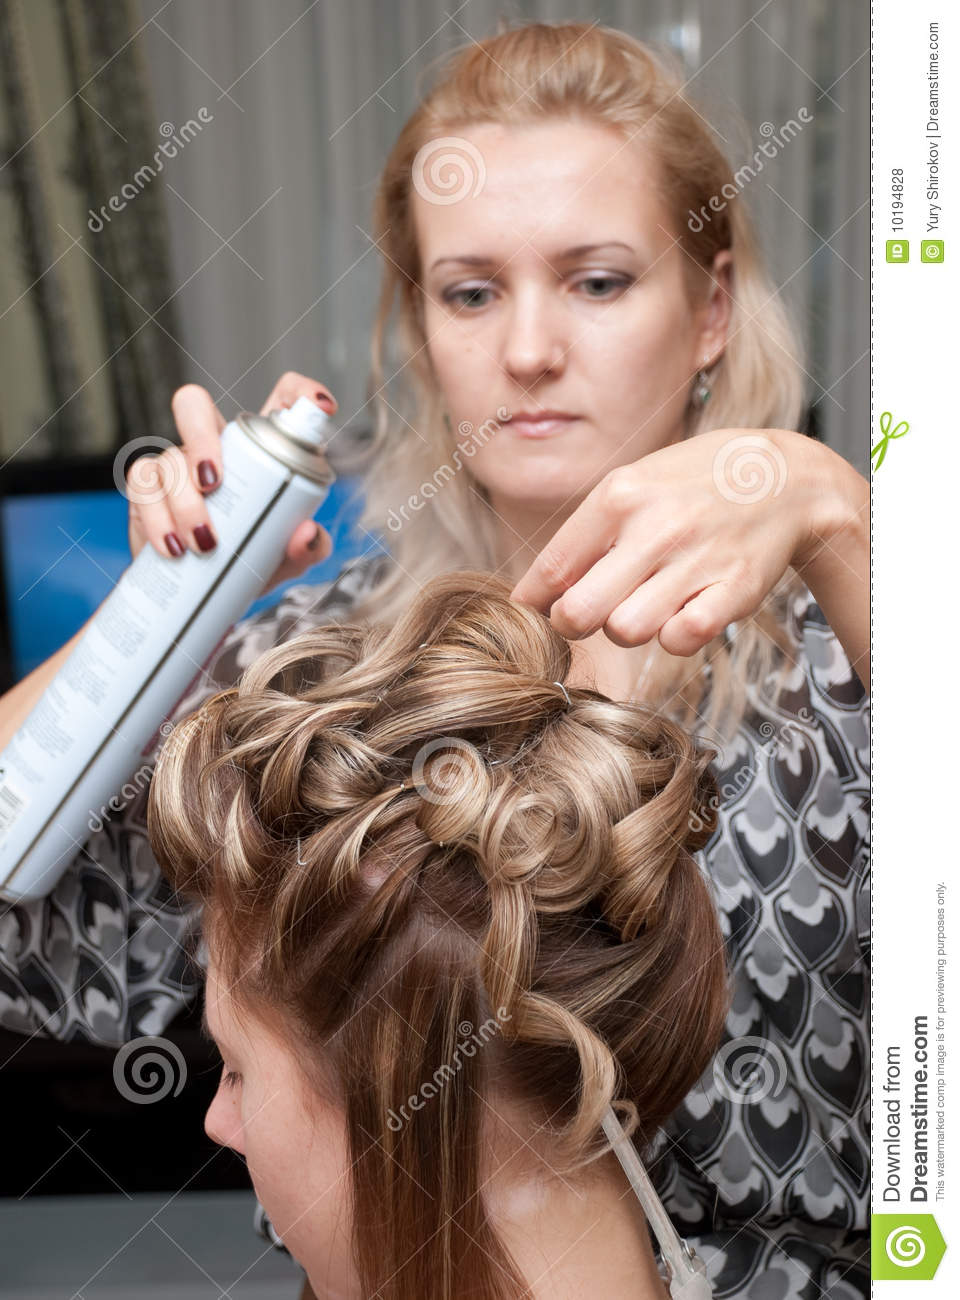 Hair Styling Royalty Free Stock Photos - Image: 10194828